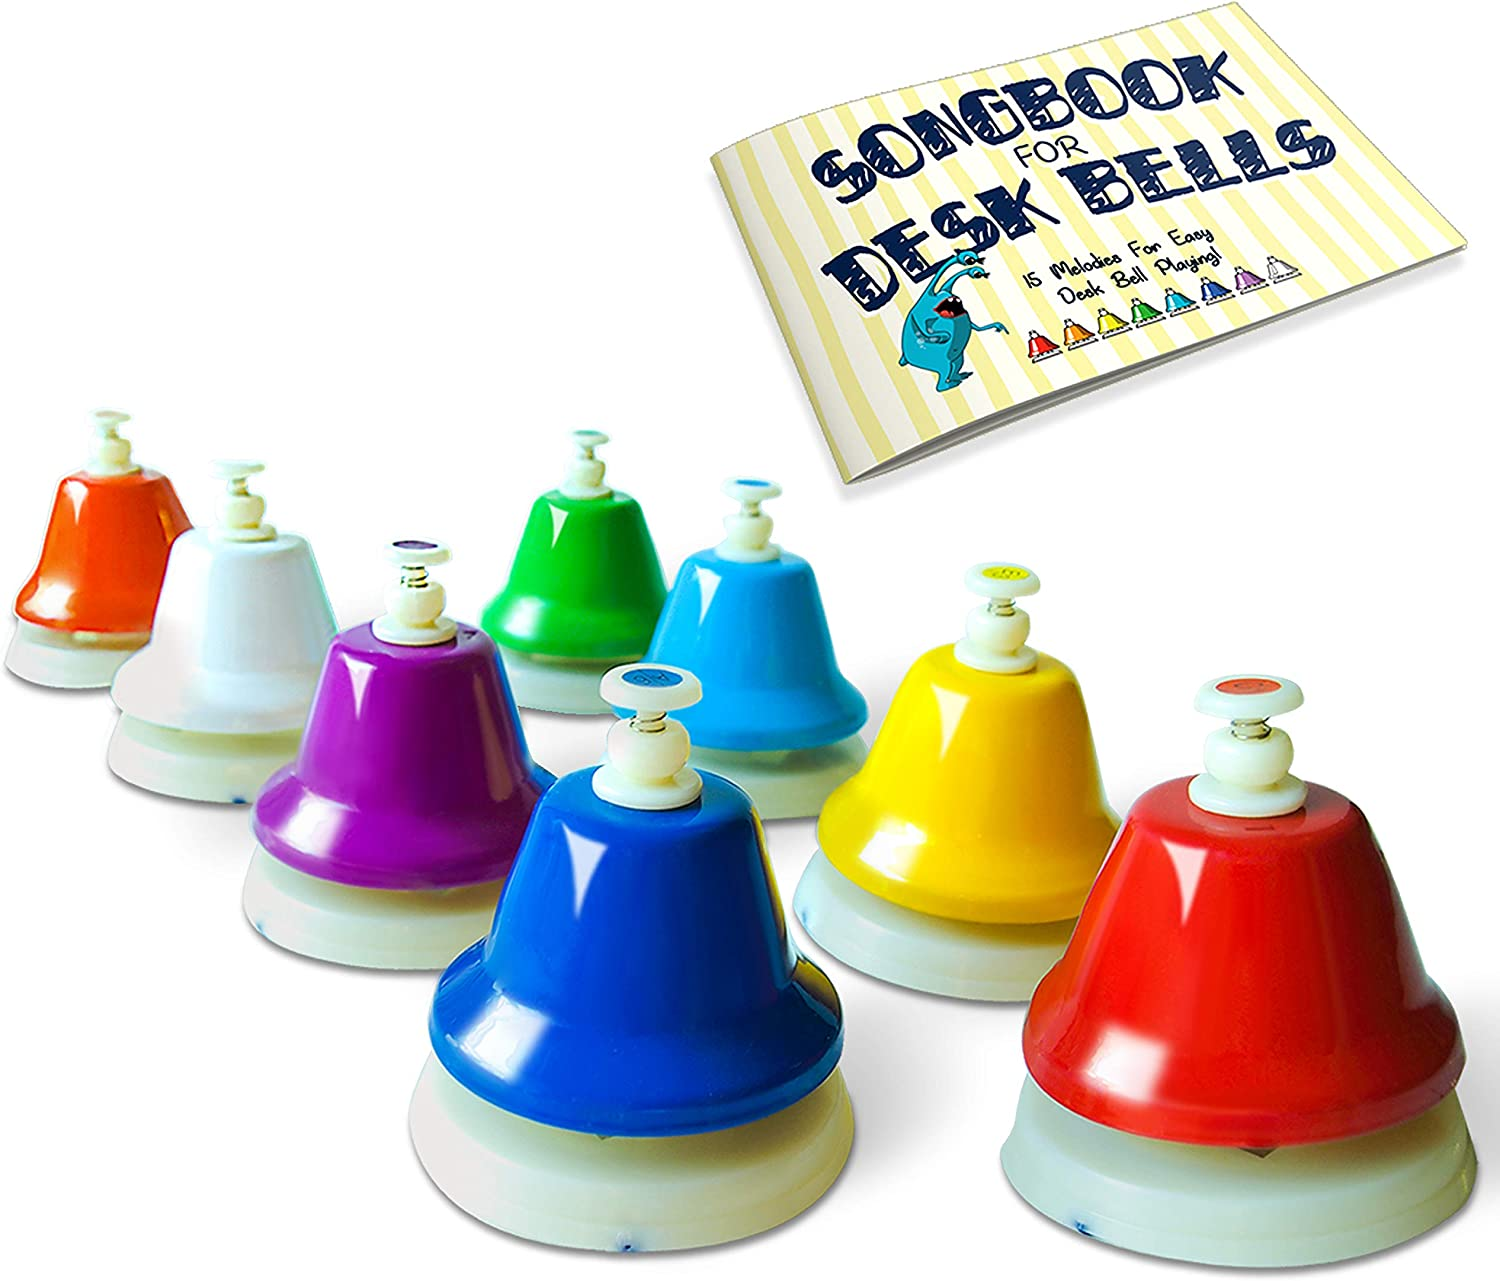 Miniartis Chroma Hand Desk Bells Set Diatonic 8 Colorful Notes Hit On Top Feature Songbook Carry Case Included Great Holiday Birthday Gift For Kids Amazon Co Uk Musical Instruments